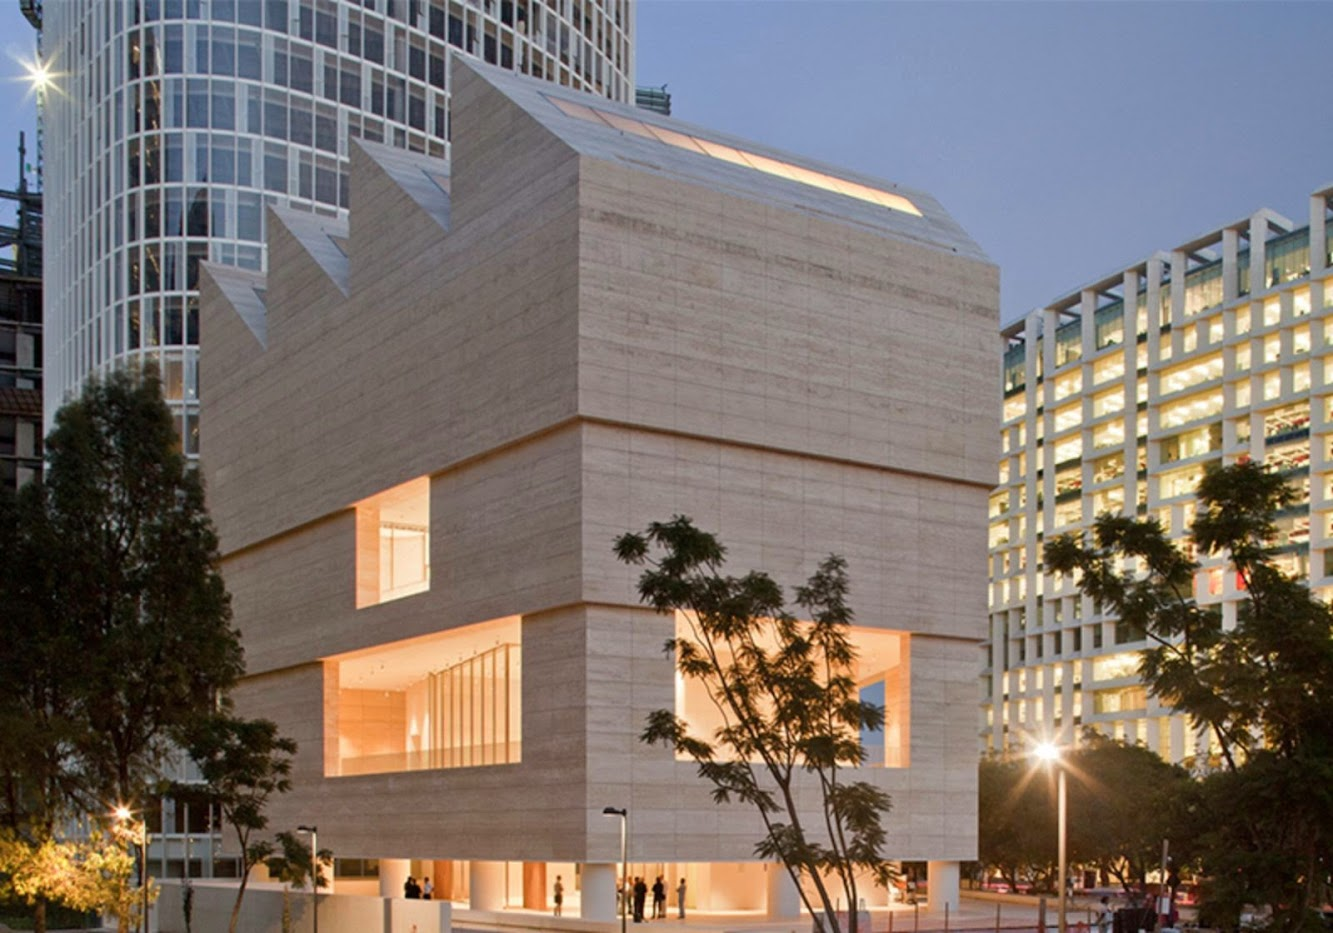 Mexico: MUSEO JUMEX by DAVID CHIPPERFIELD ARCHITECTS